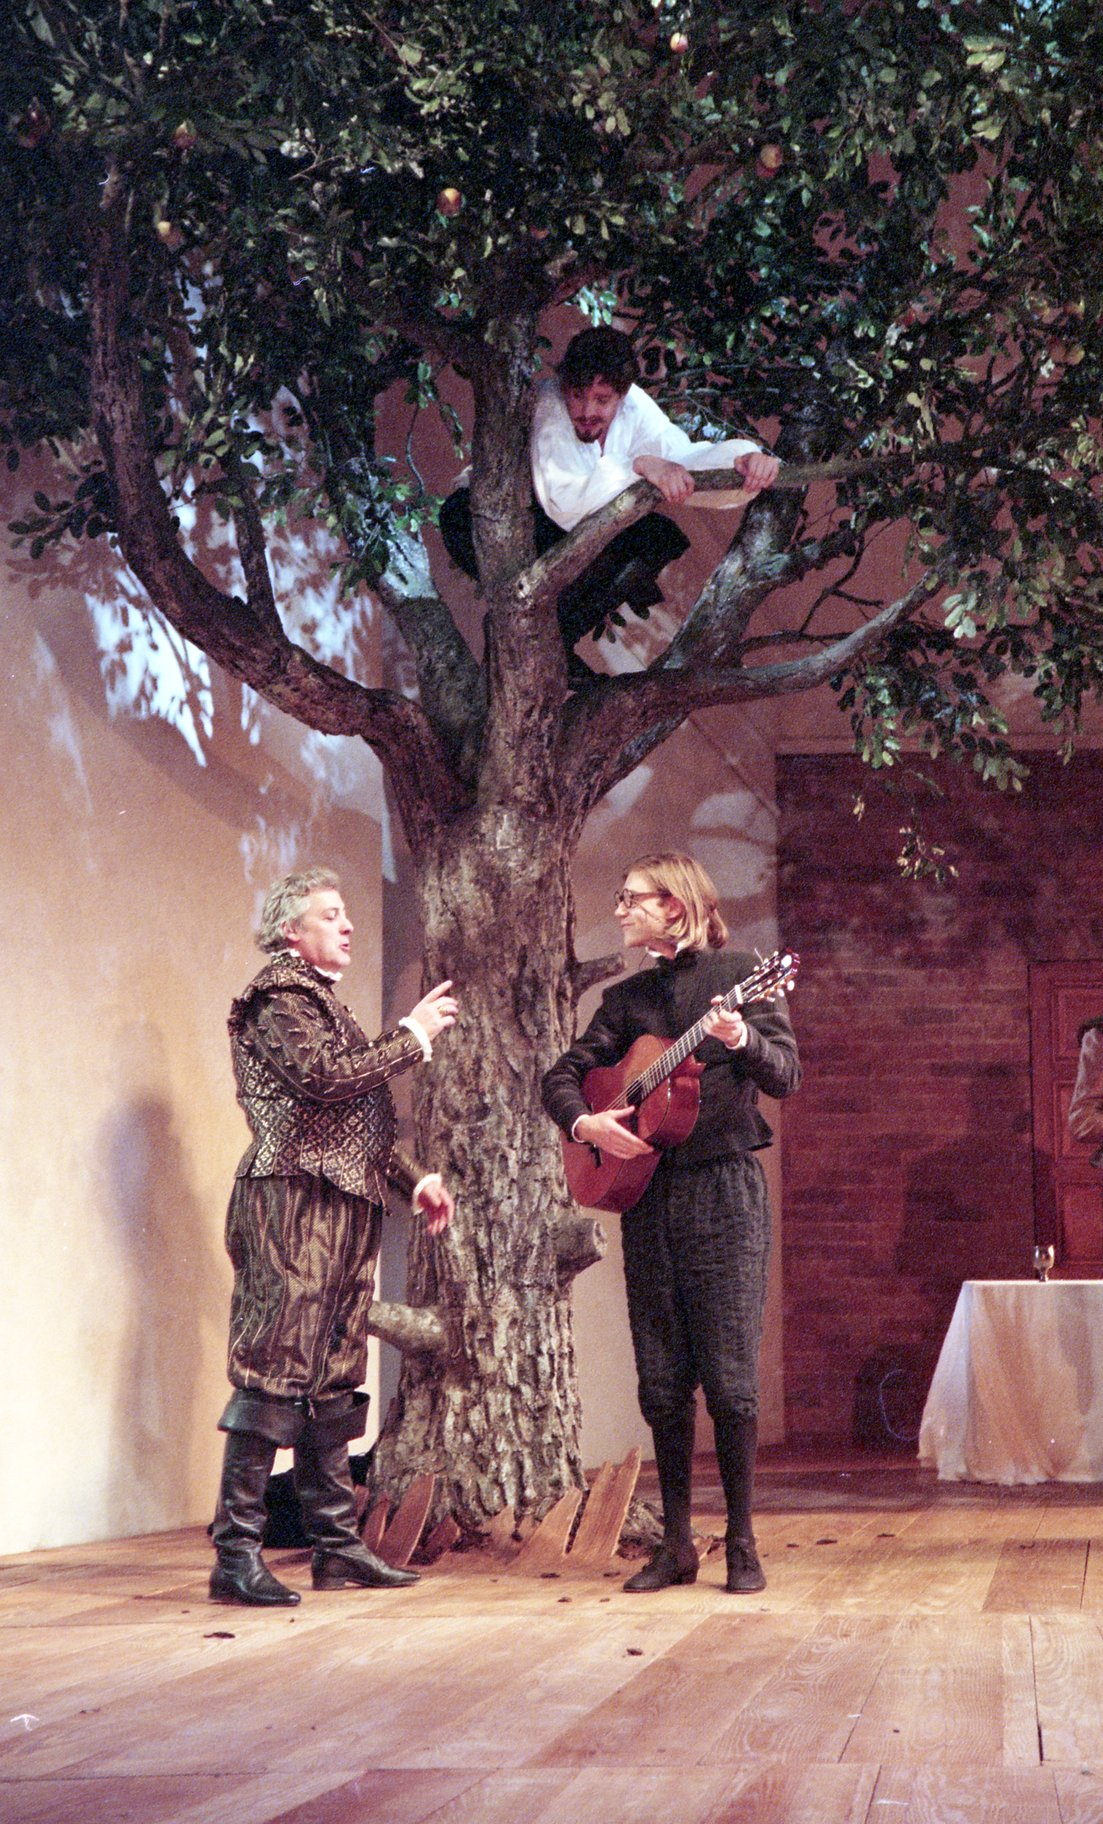 A man in a tree listens in to two men talking beneath him.